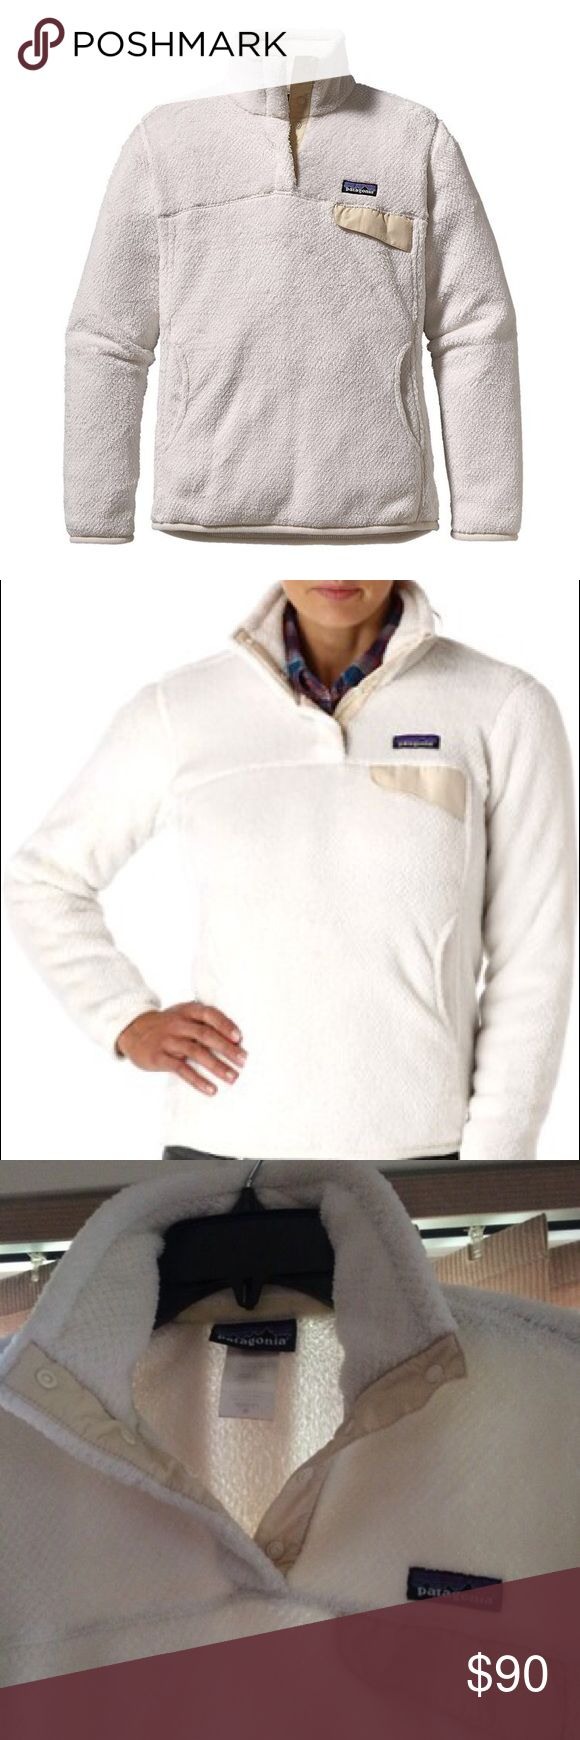 Patagonia Women's Re-Tool Snap-T® Fleece Pullover Size Medium Patagonia Sweaters